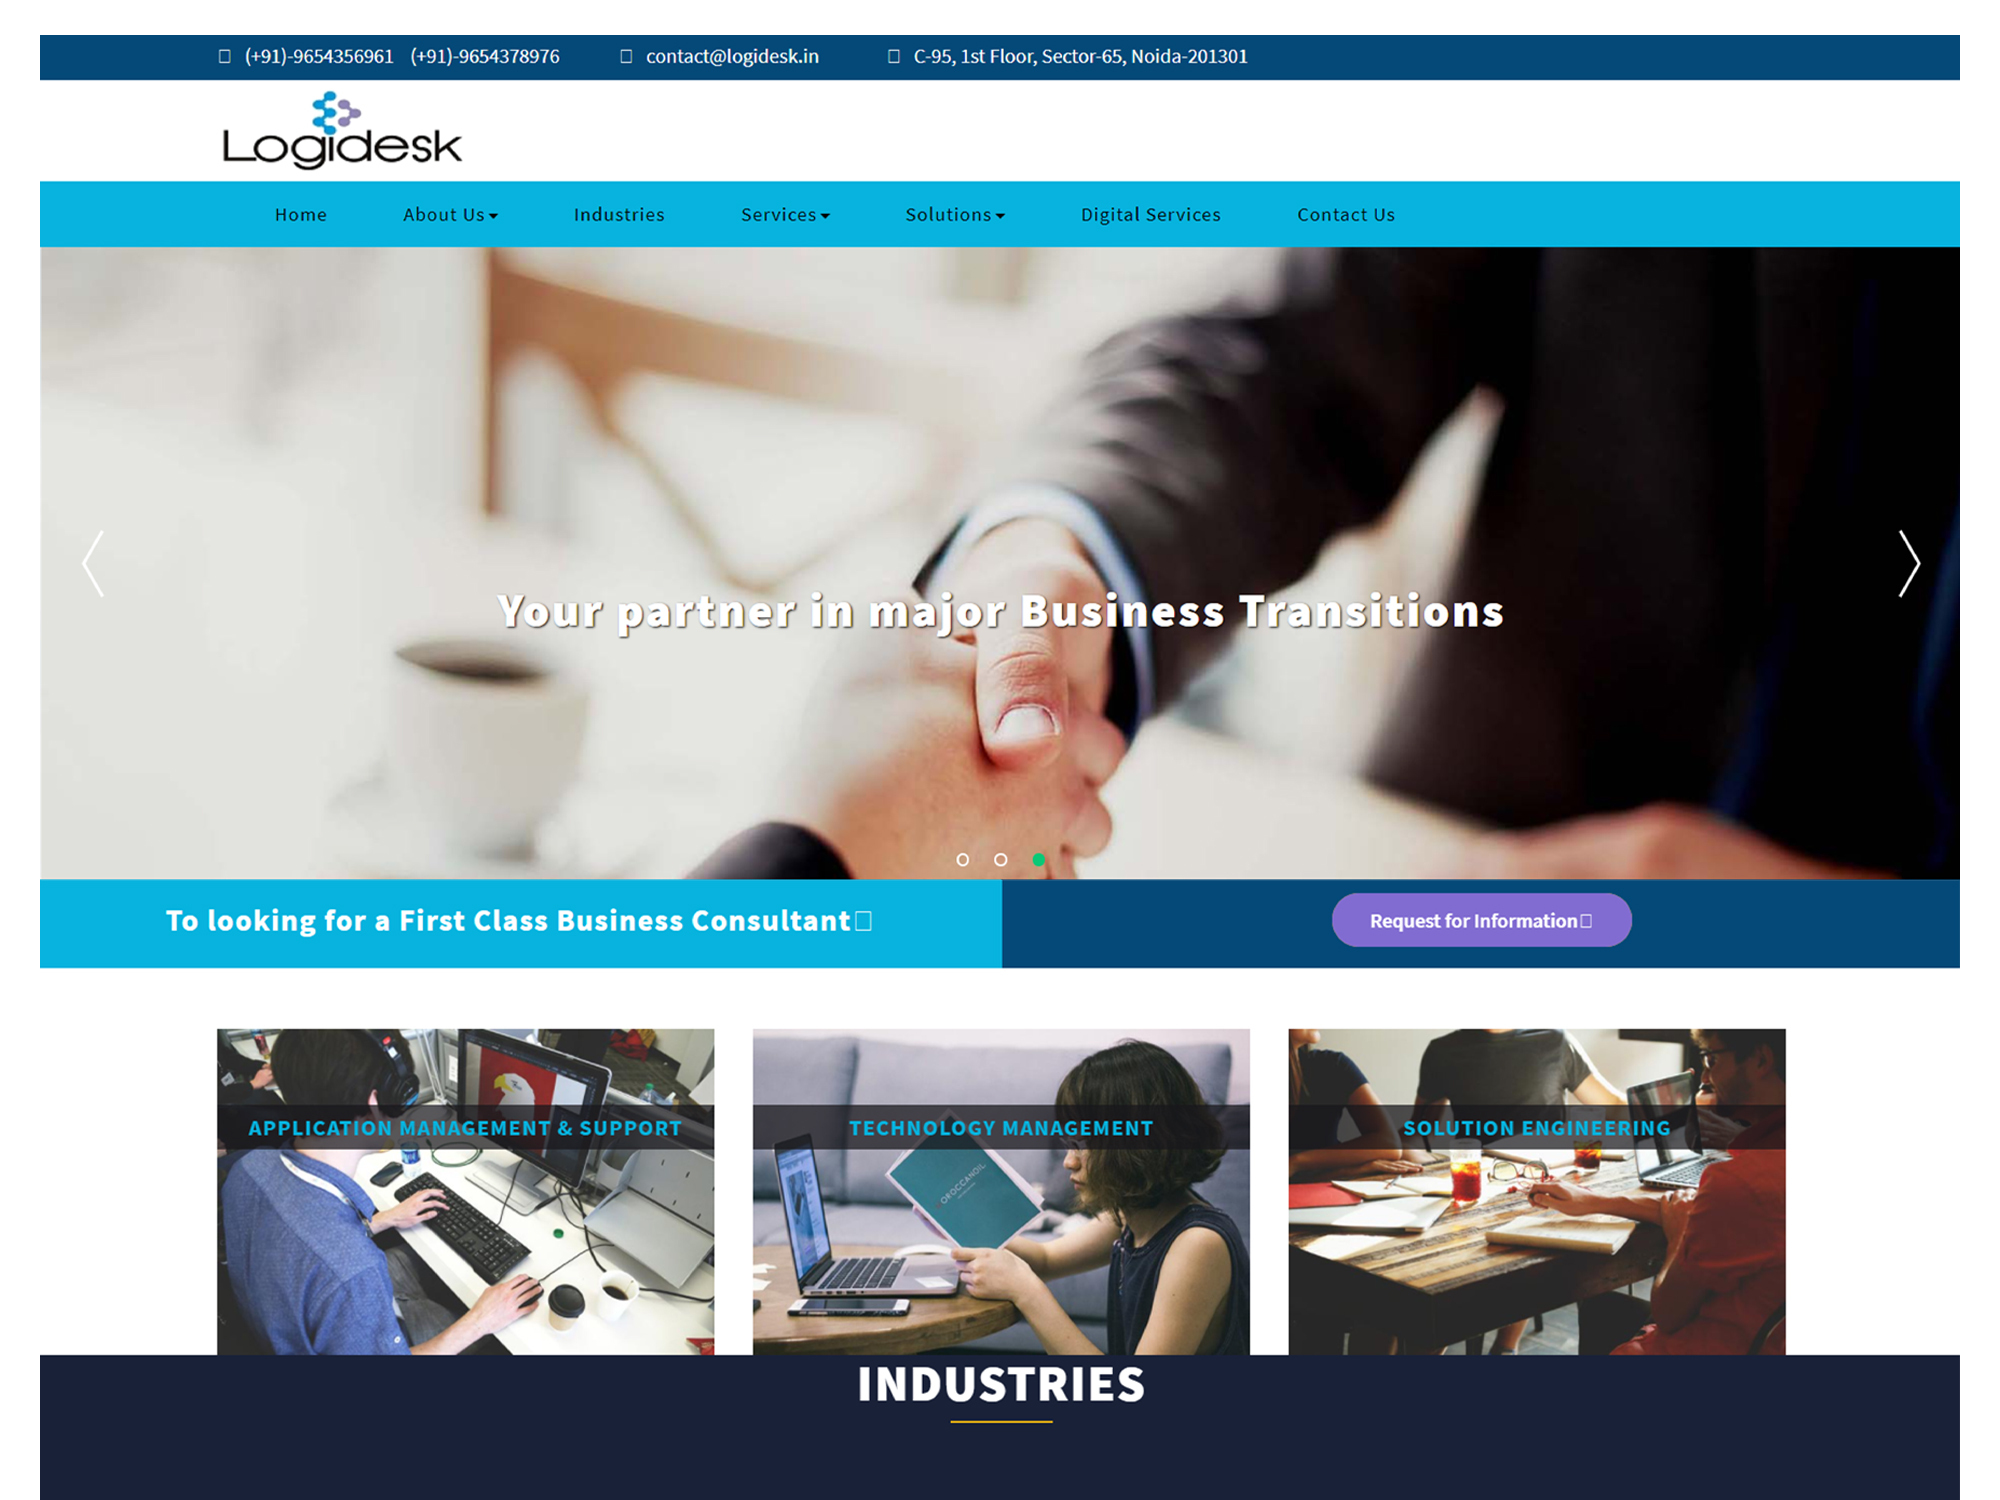 Logidesk Website